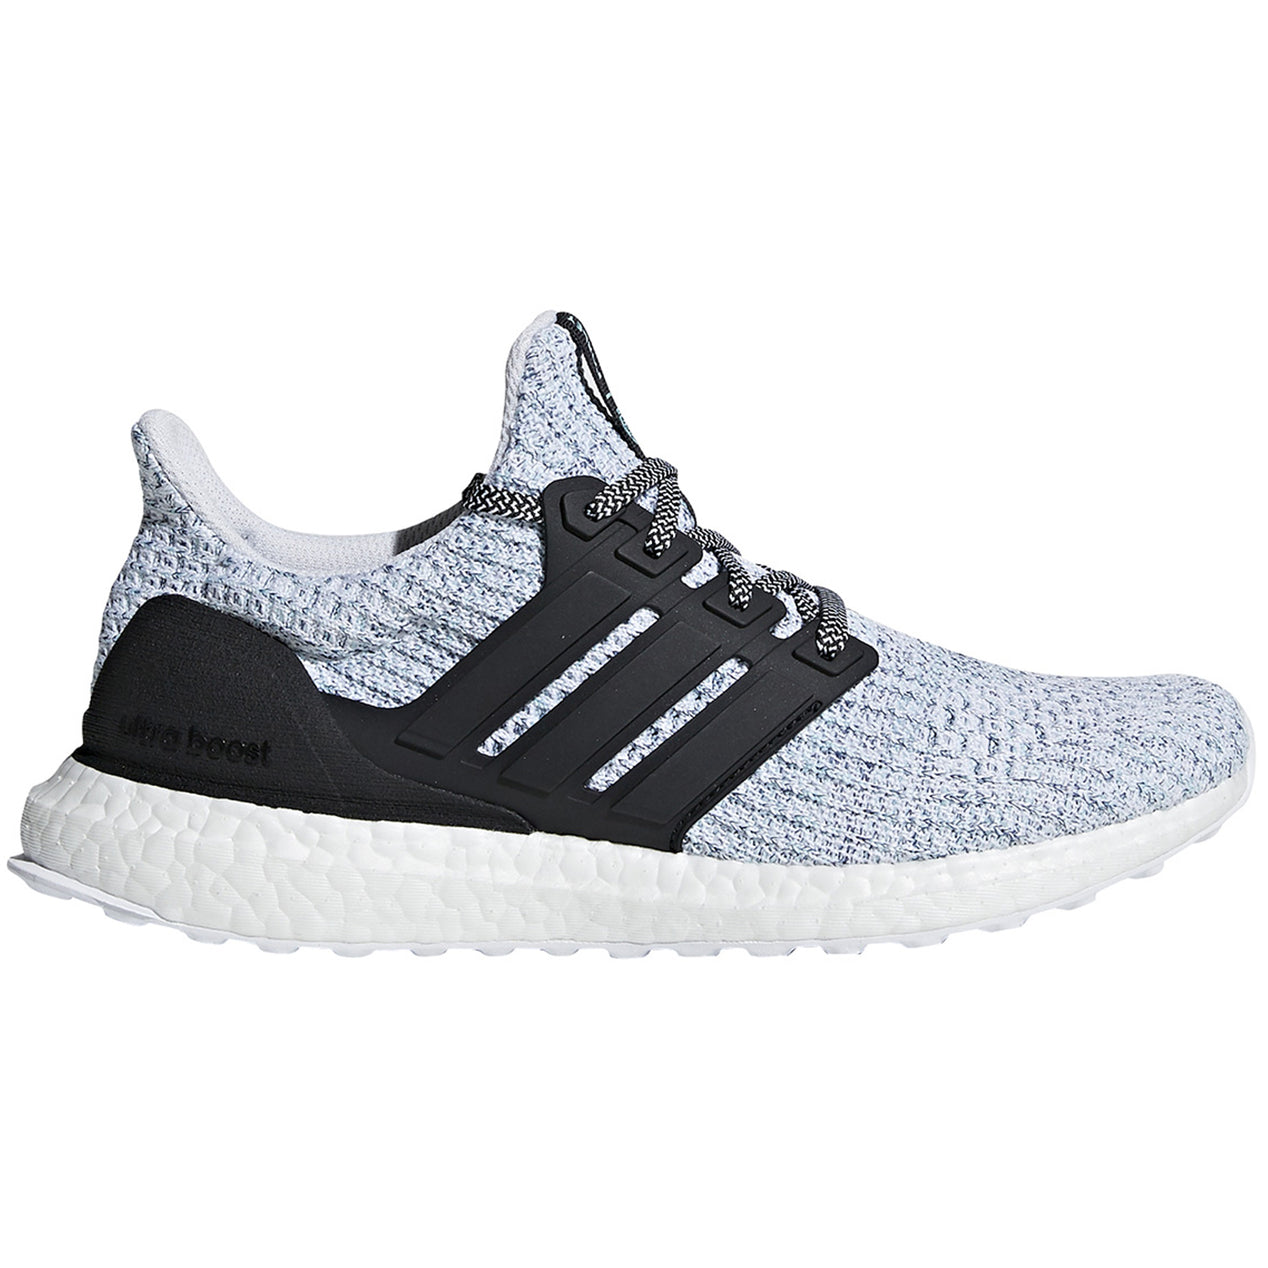 the best attitude 1b2e5 ed6d9 Adidas UltraBOOST Parley Running Shoes - Women s